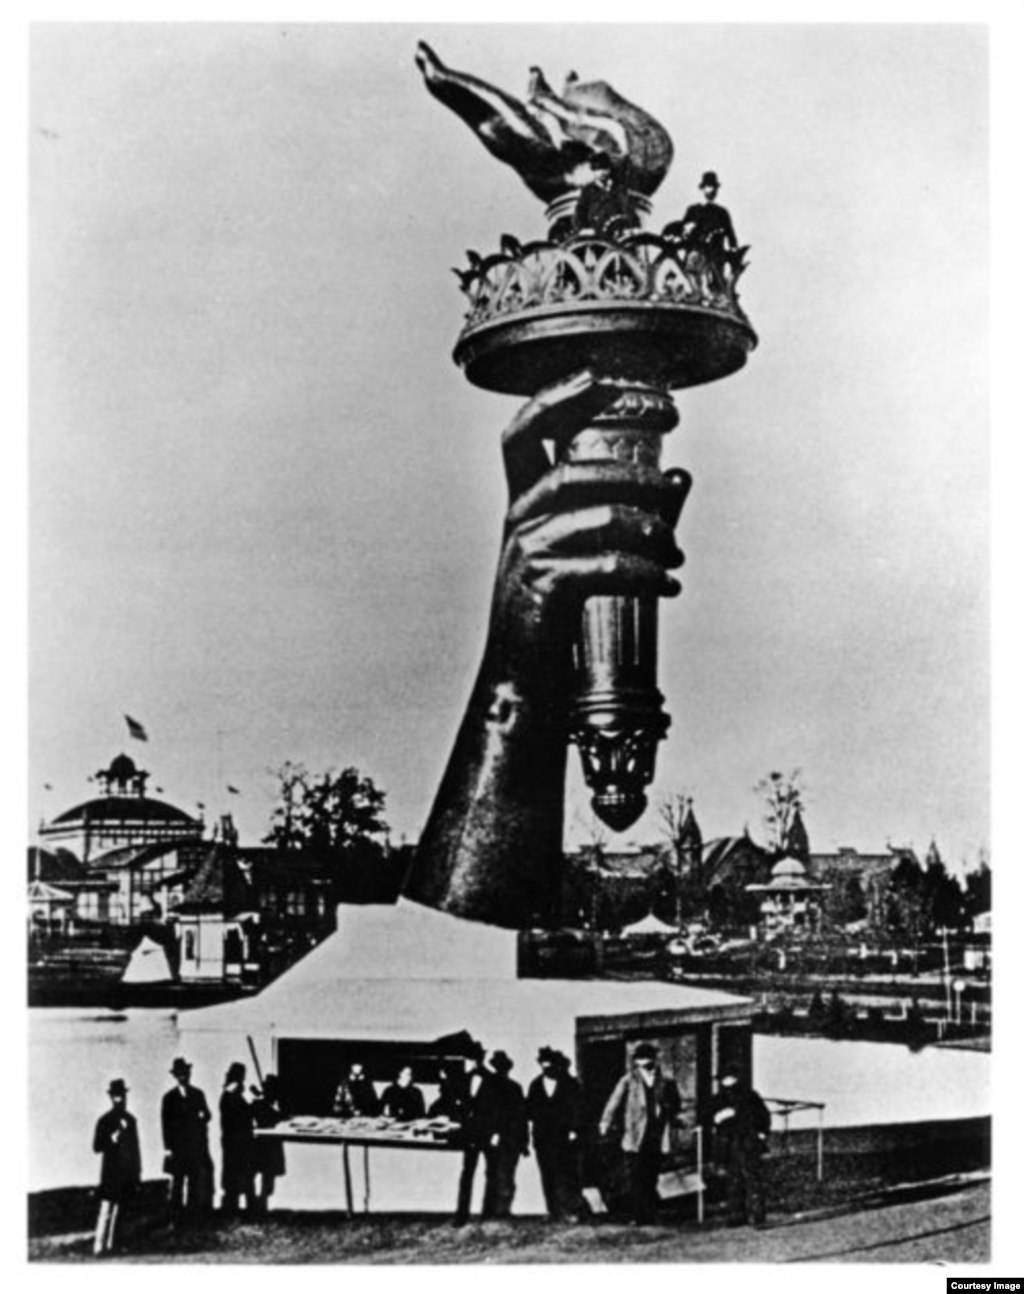 Liberty's torch on display at the World's Fair in Philadelphia in 1876 to raise money and public enthusiasm.